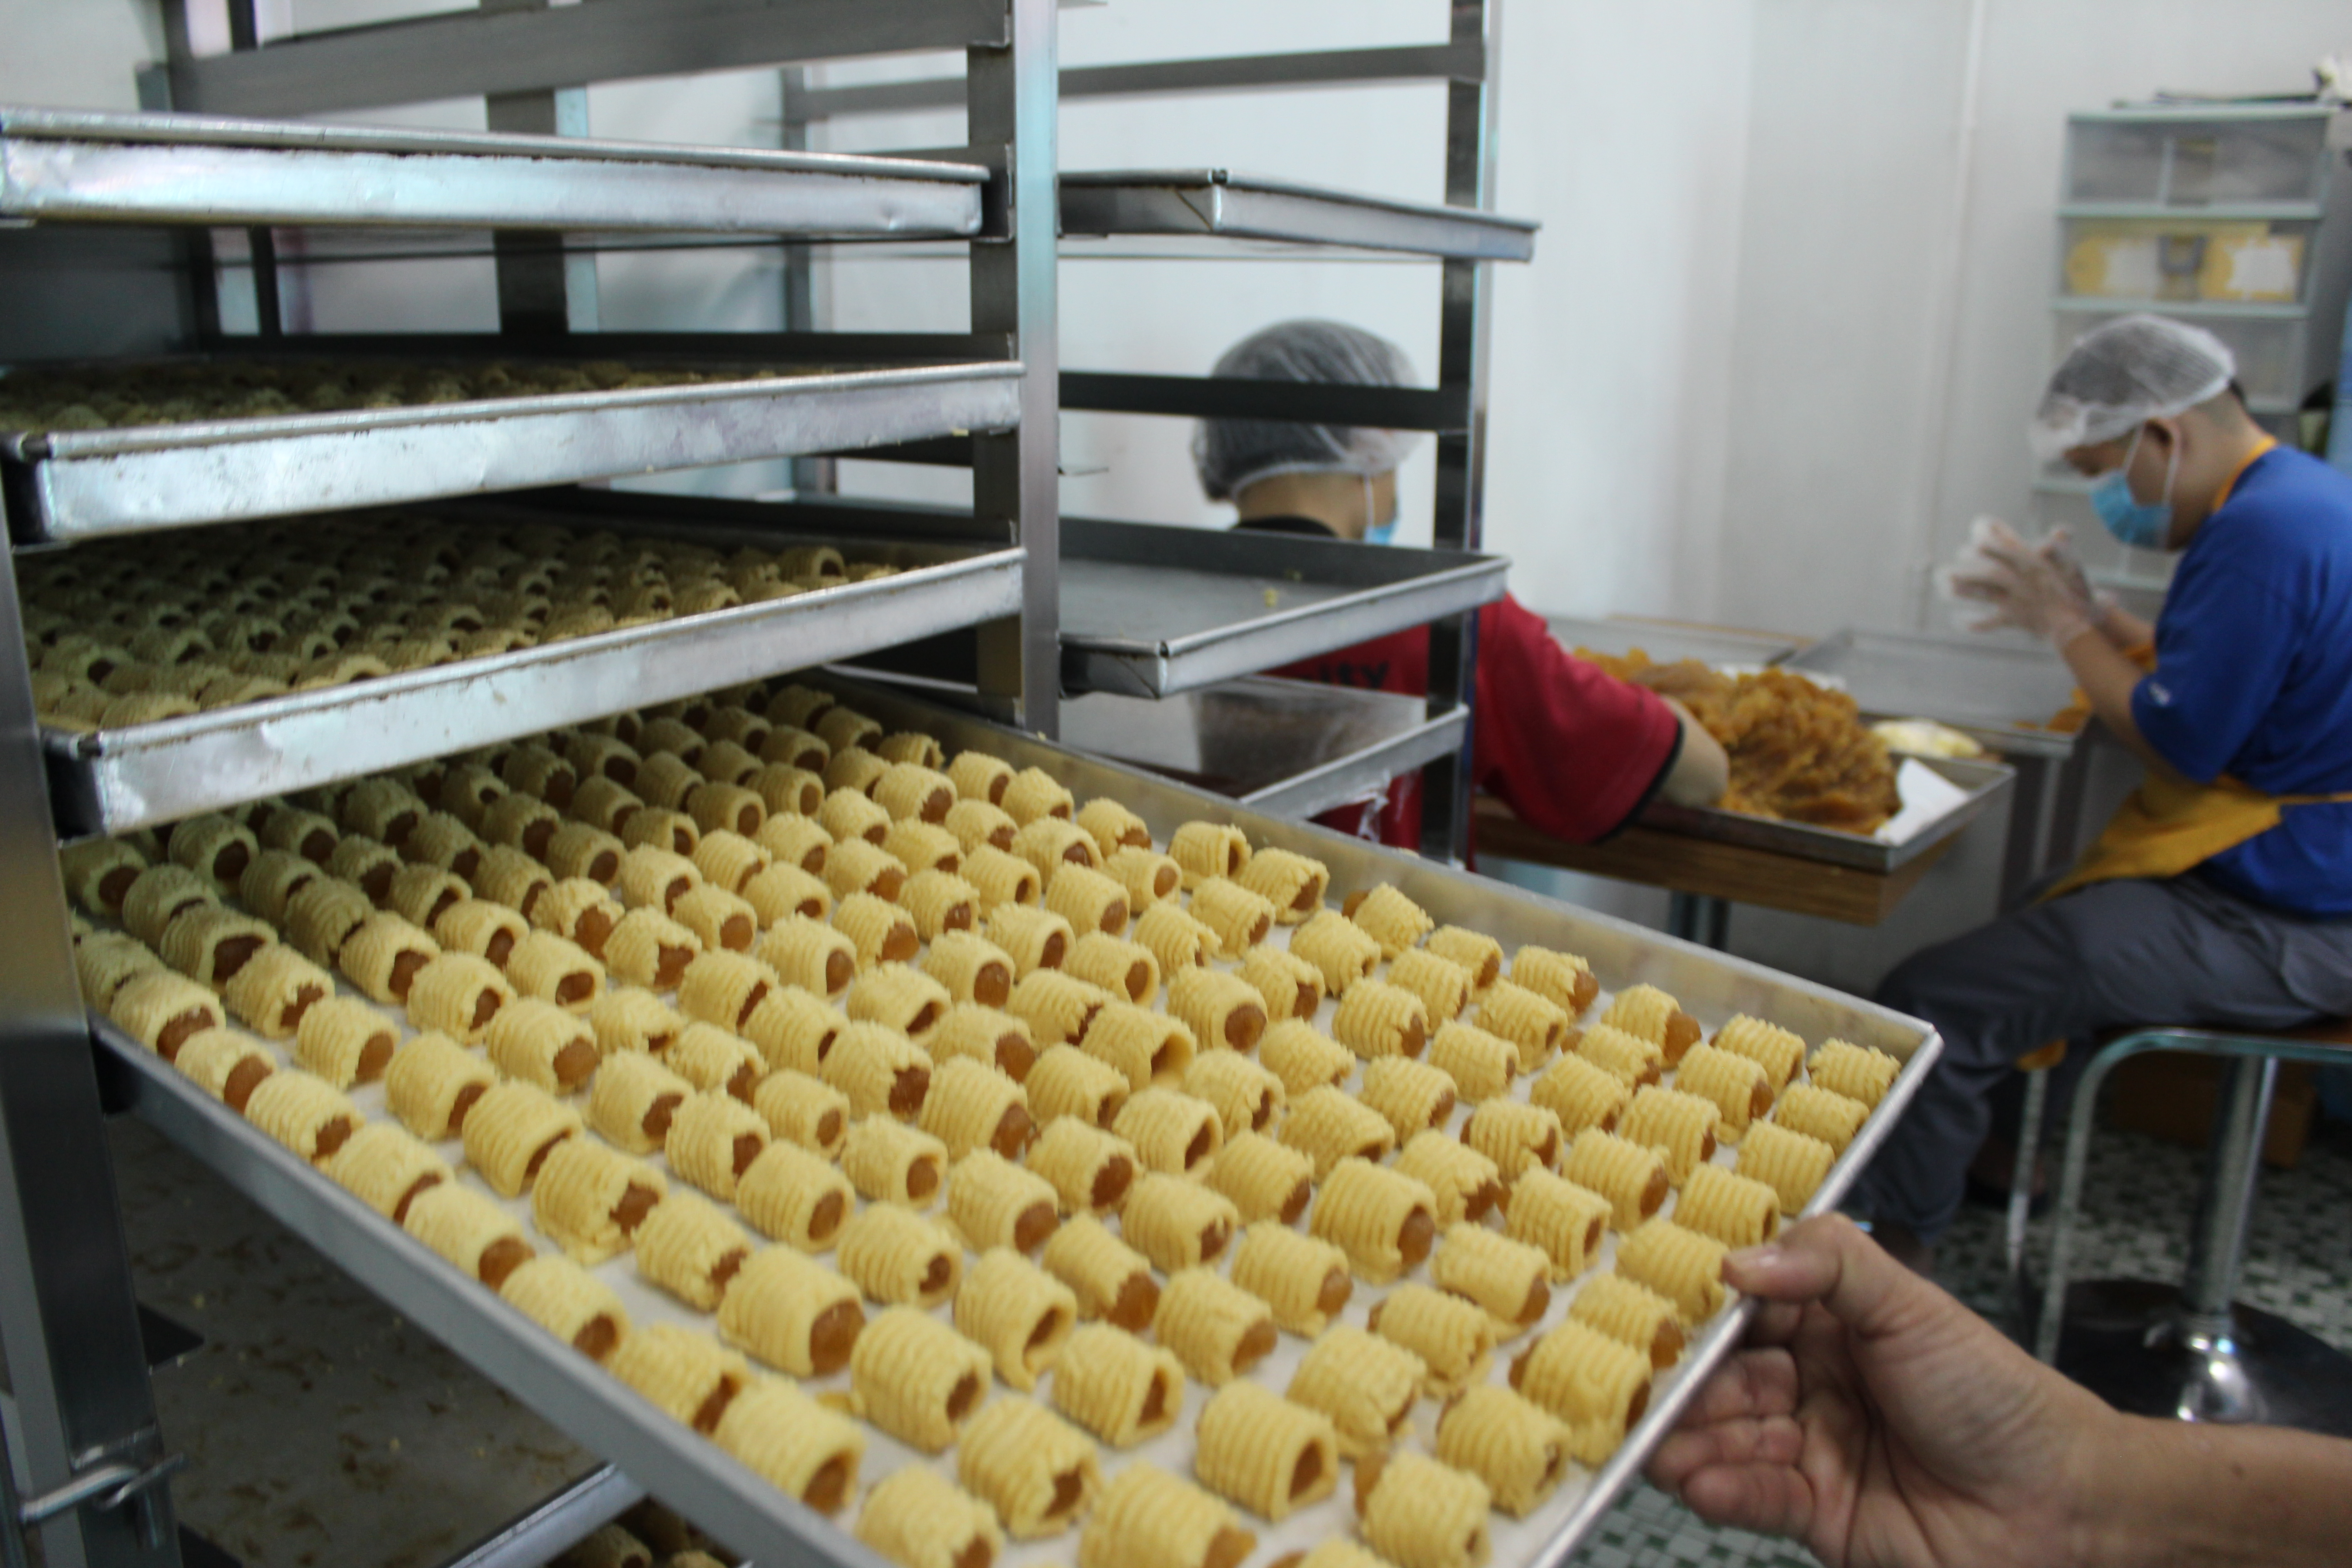 Rolling thousands of pineapple tarts is no easy feat.